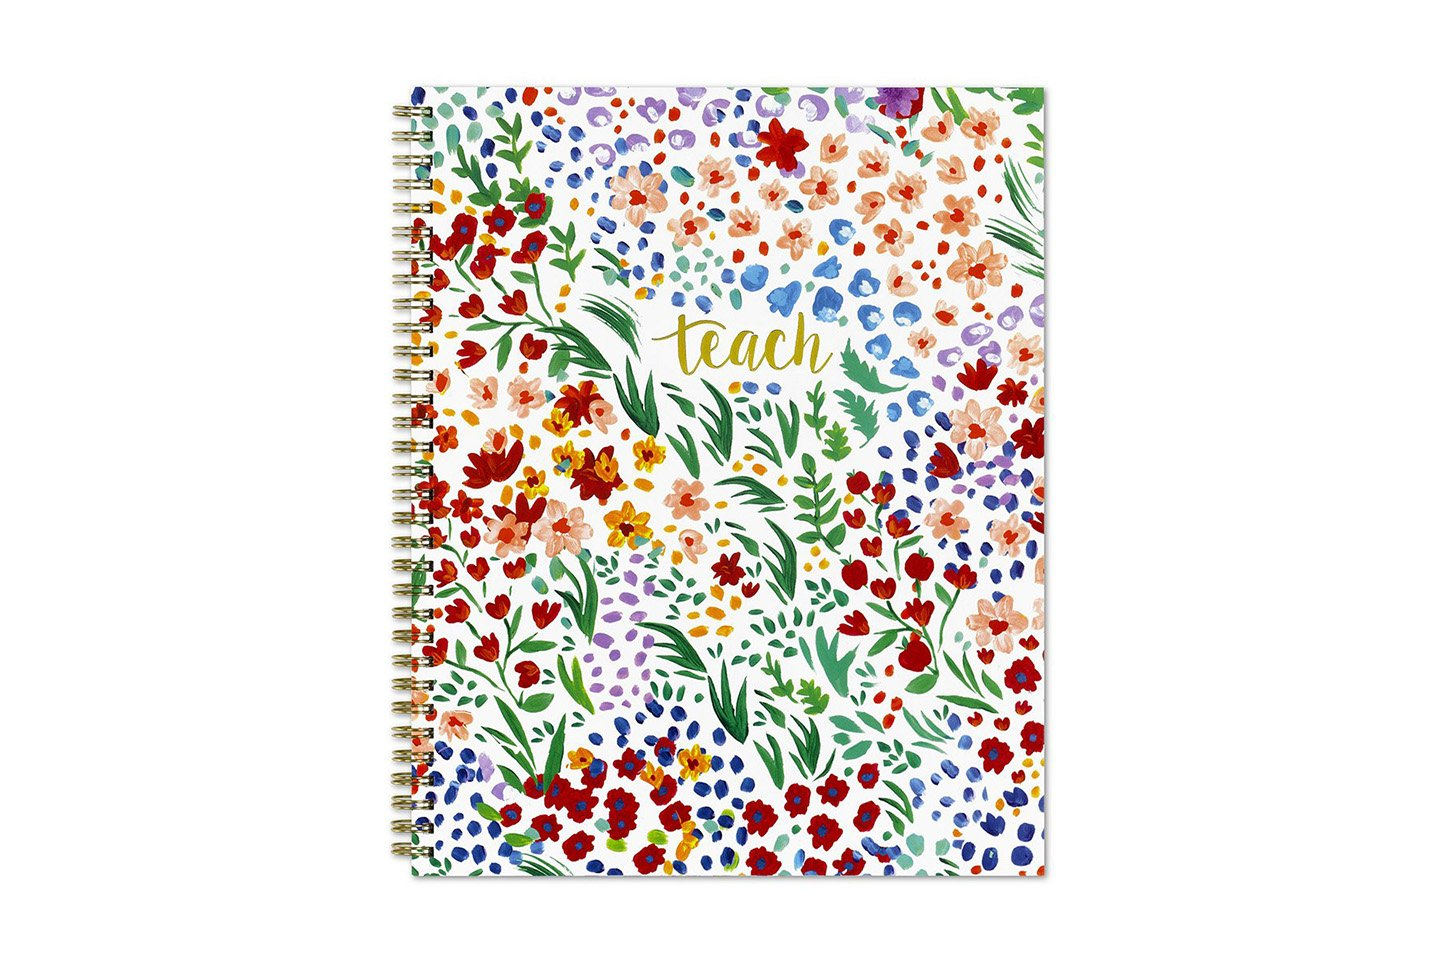 Blue Sky Teacher Weekly/Monthly Academic Planner in Ditsy Dapple Floral, $30.99